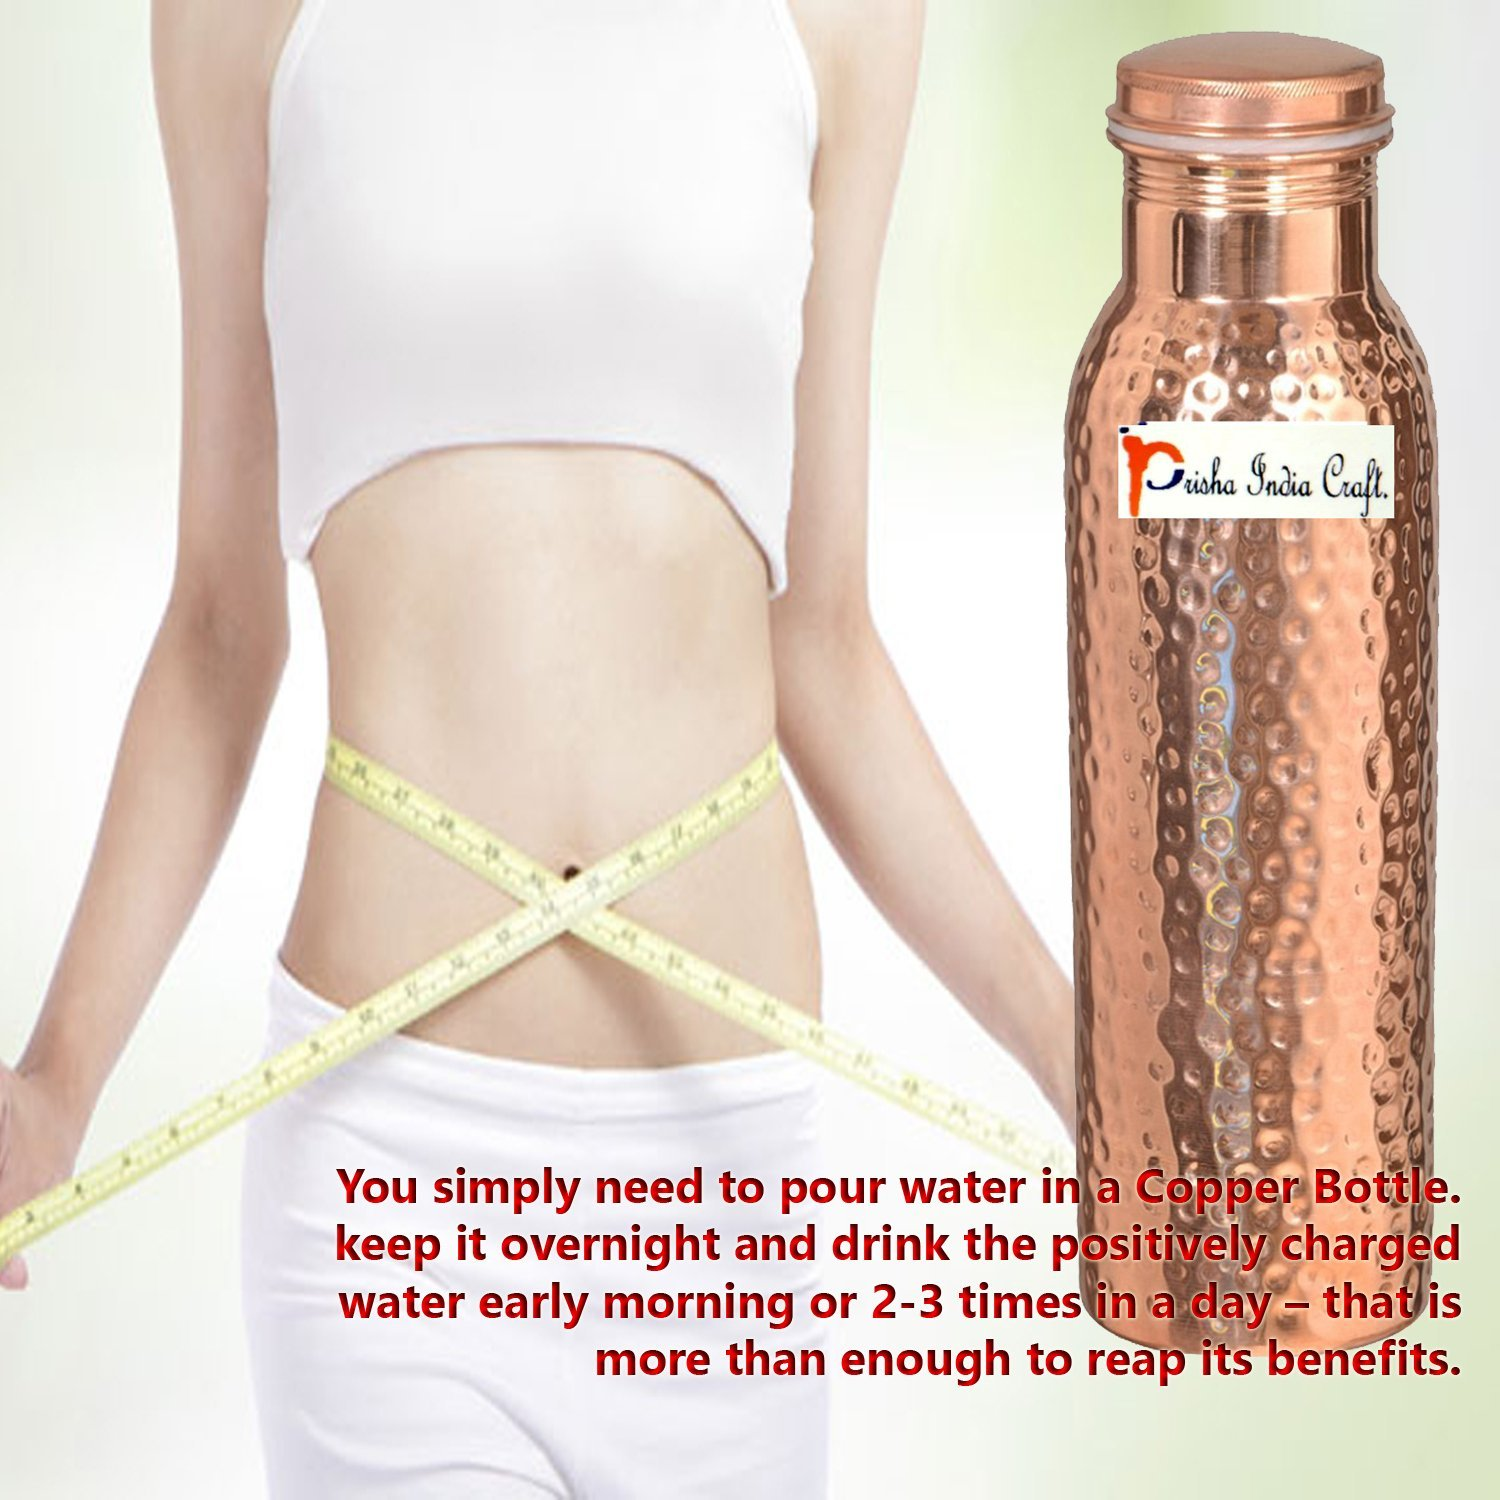 900ml / 30oz – Set of 10 - Prisha India Craft Pure Copper Water Bottle Ayurveda Health Benefits - Best Quality Water Bottles Joint Free, Handmade Christmas Gift by Prisha India Craft (Image #4)